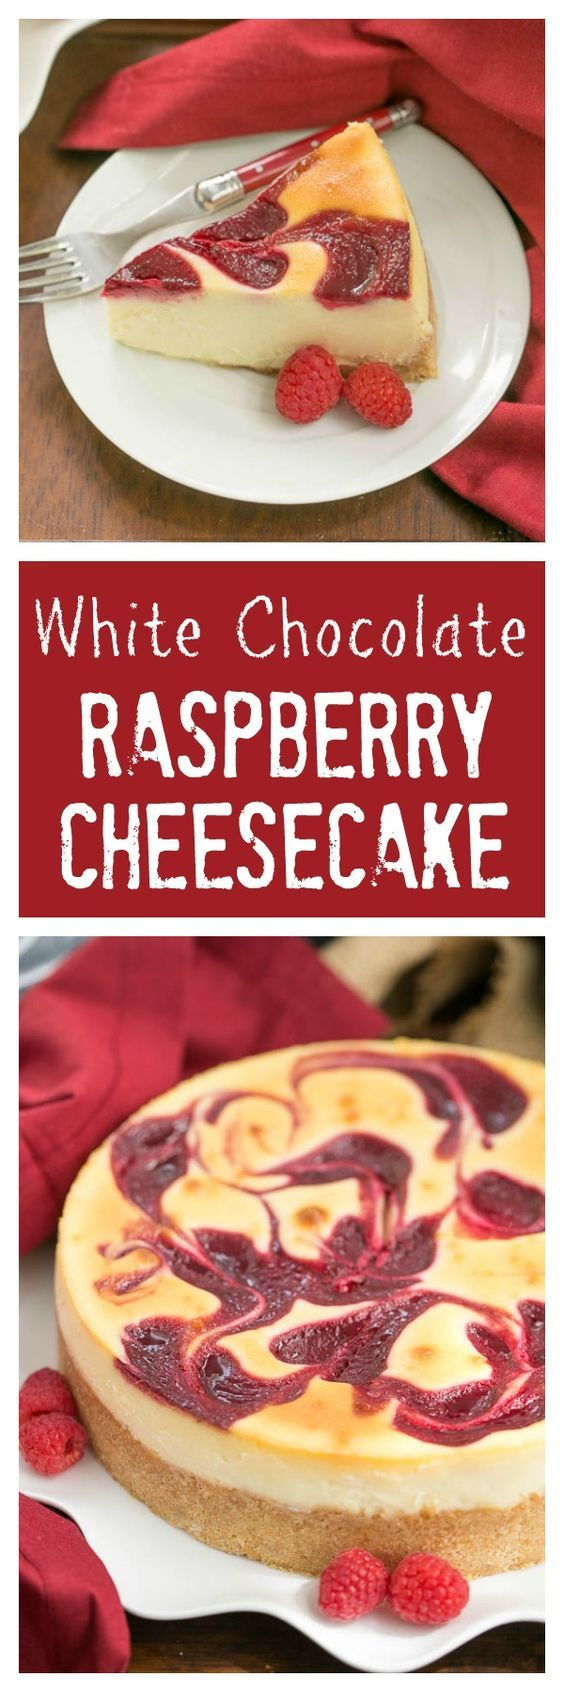 White Chocolate Raspberry Swirl Cheesecake | A luscious White Chocolate Cheesecake with a marbleized raspberry topping @lizzydo